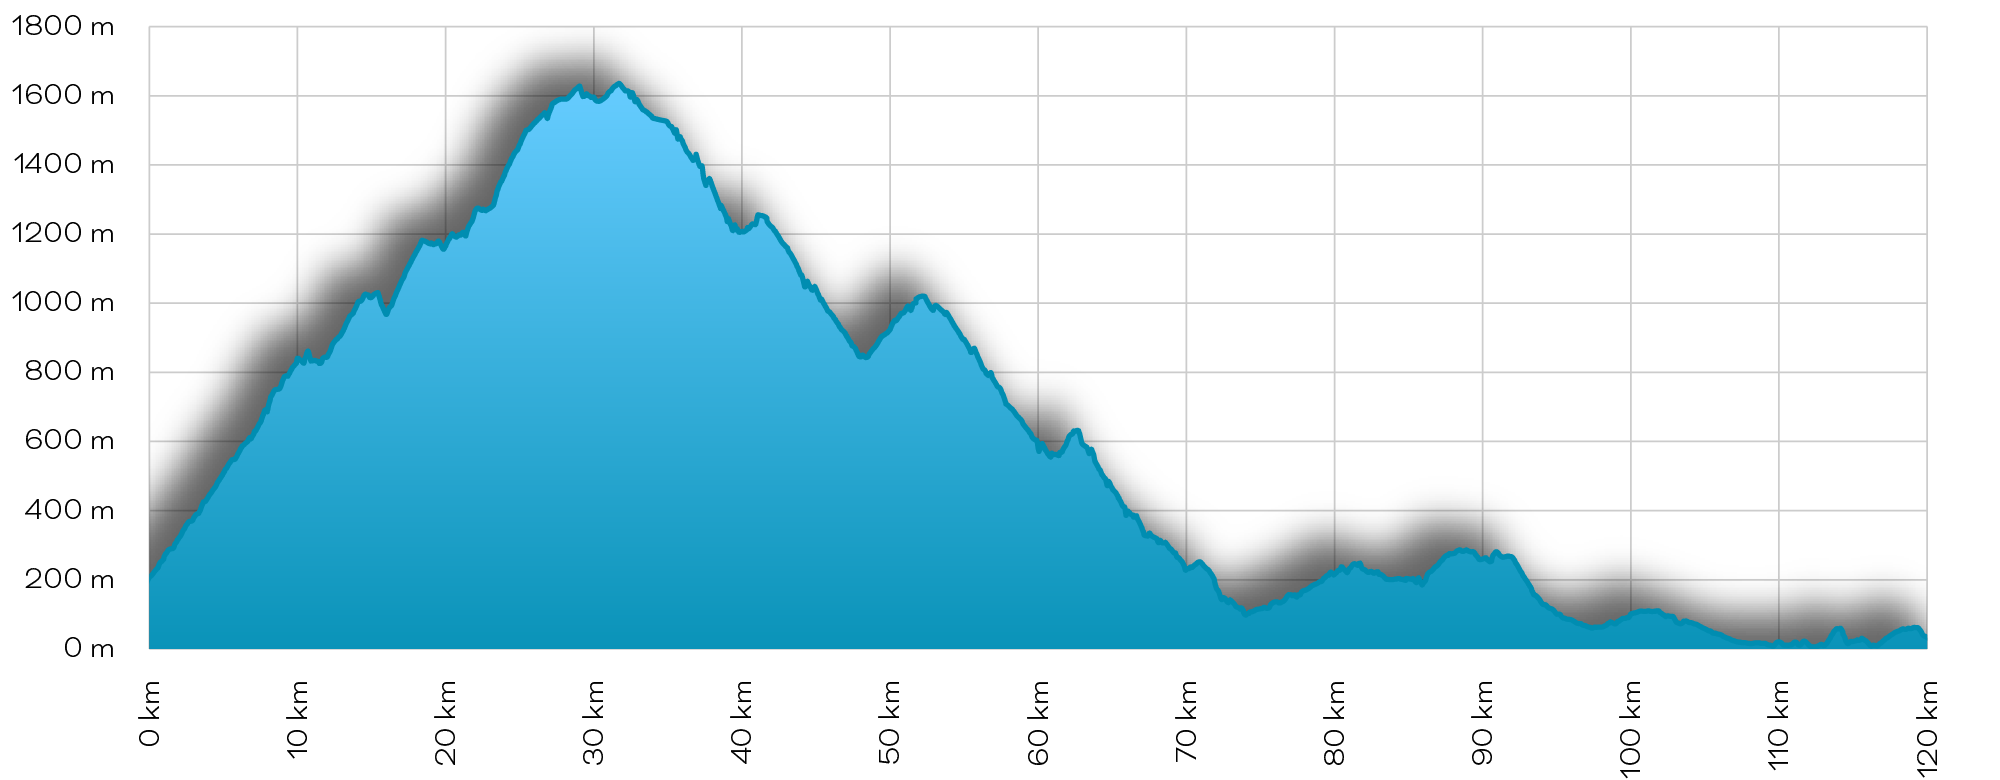 Black mountain - elevation profile